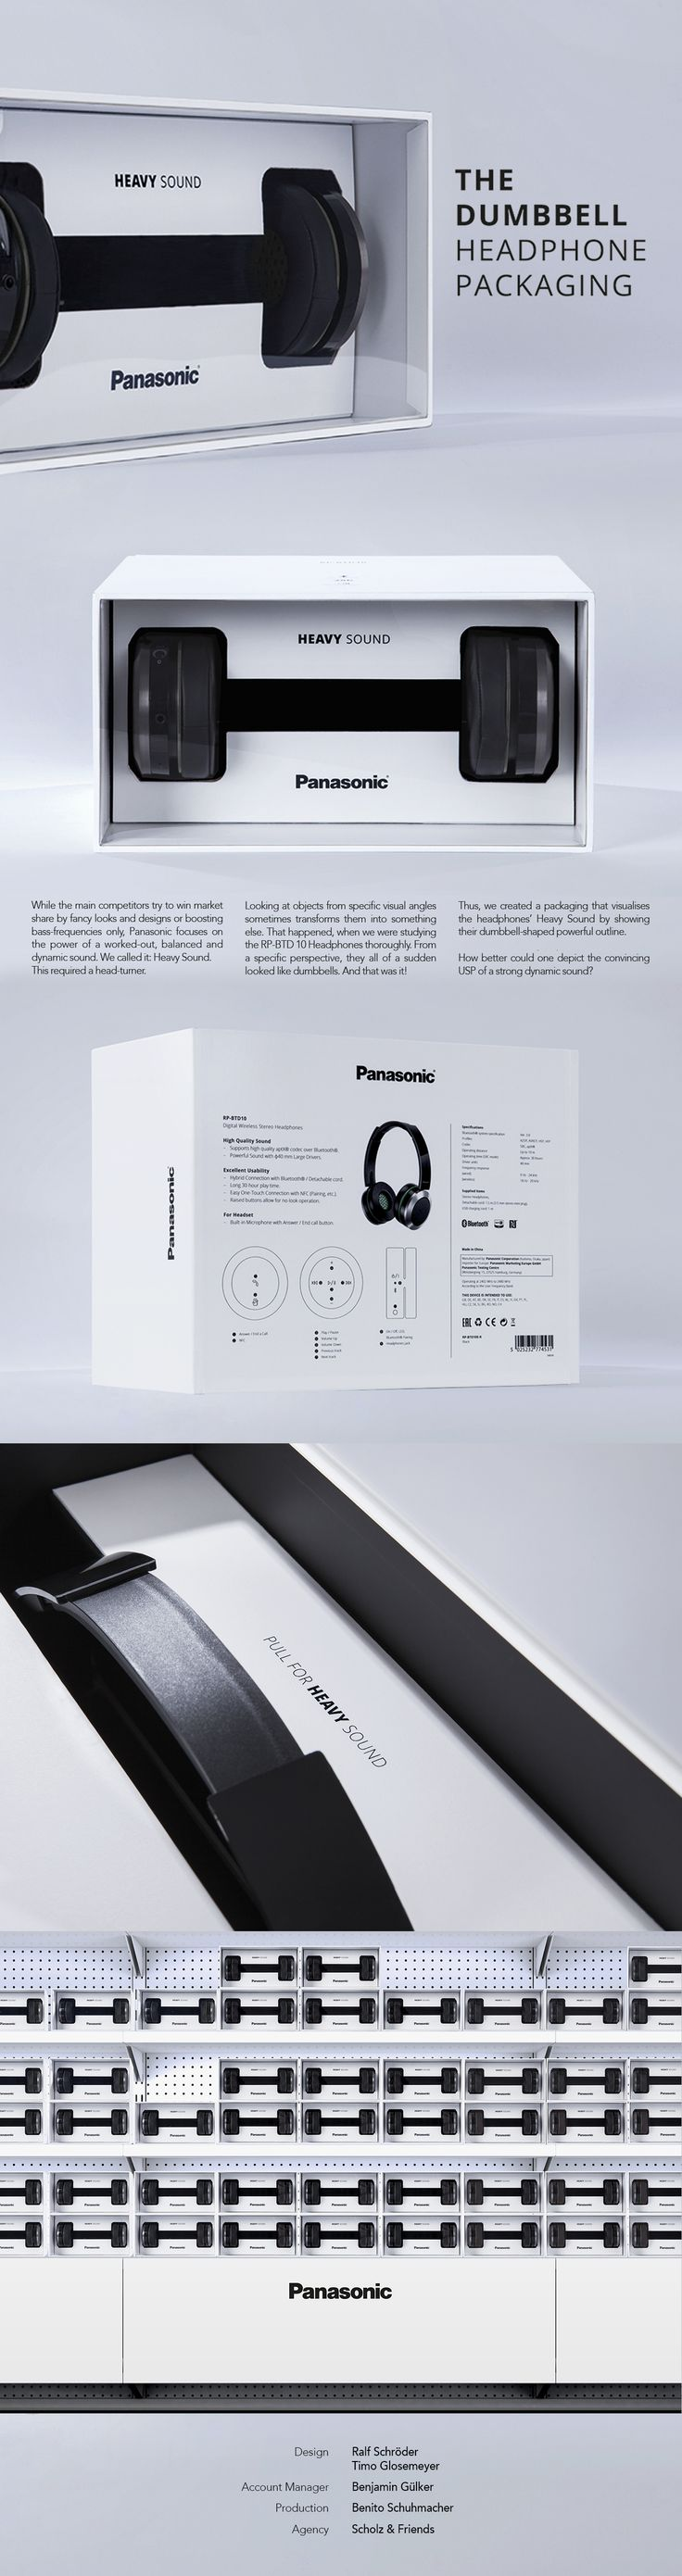 Panasonic - The Dumbbell Headphone PackagingPanasonic is one of the most important innovators in electronic products worldwide and manufactures headphones of the highest quality. As competition in this market increases sharply, our task was to develop a…